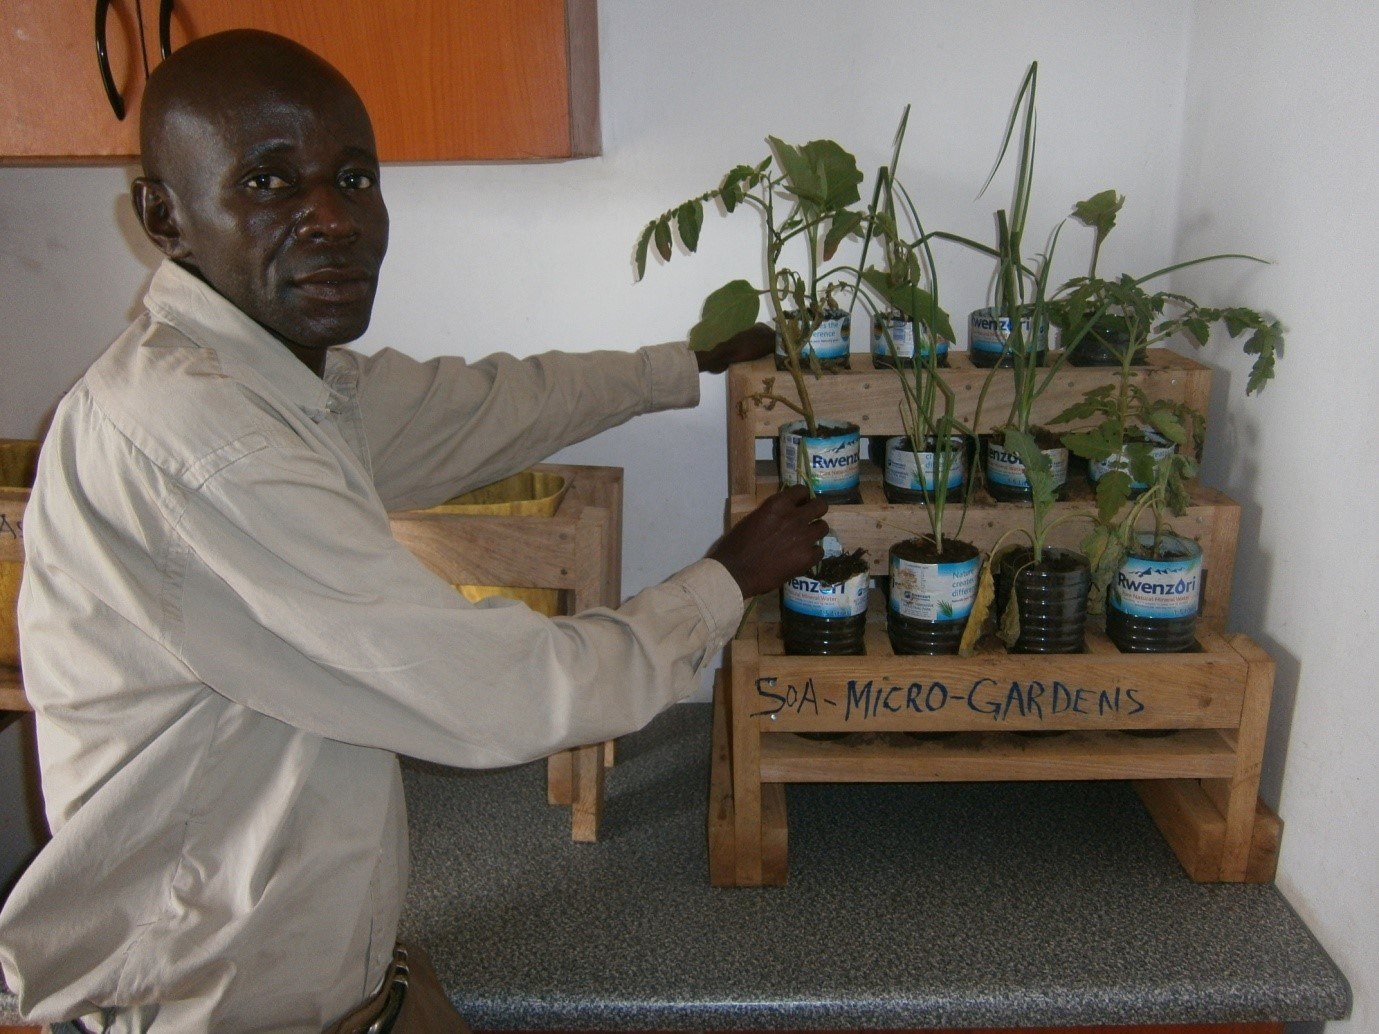 Bosco, one of the CHPs in Bukasakya, displaying micro garden. We are able to grow onions, carrots, beets and other veg